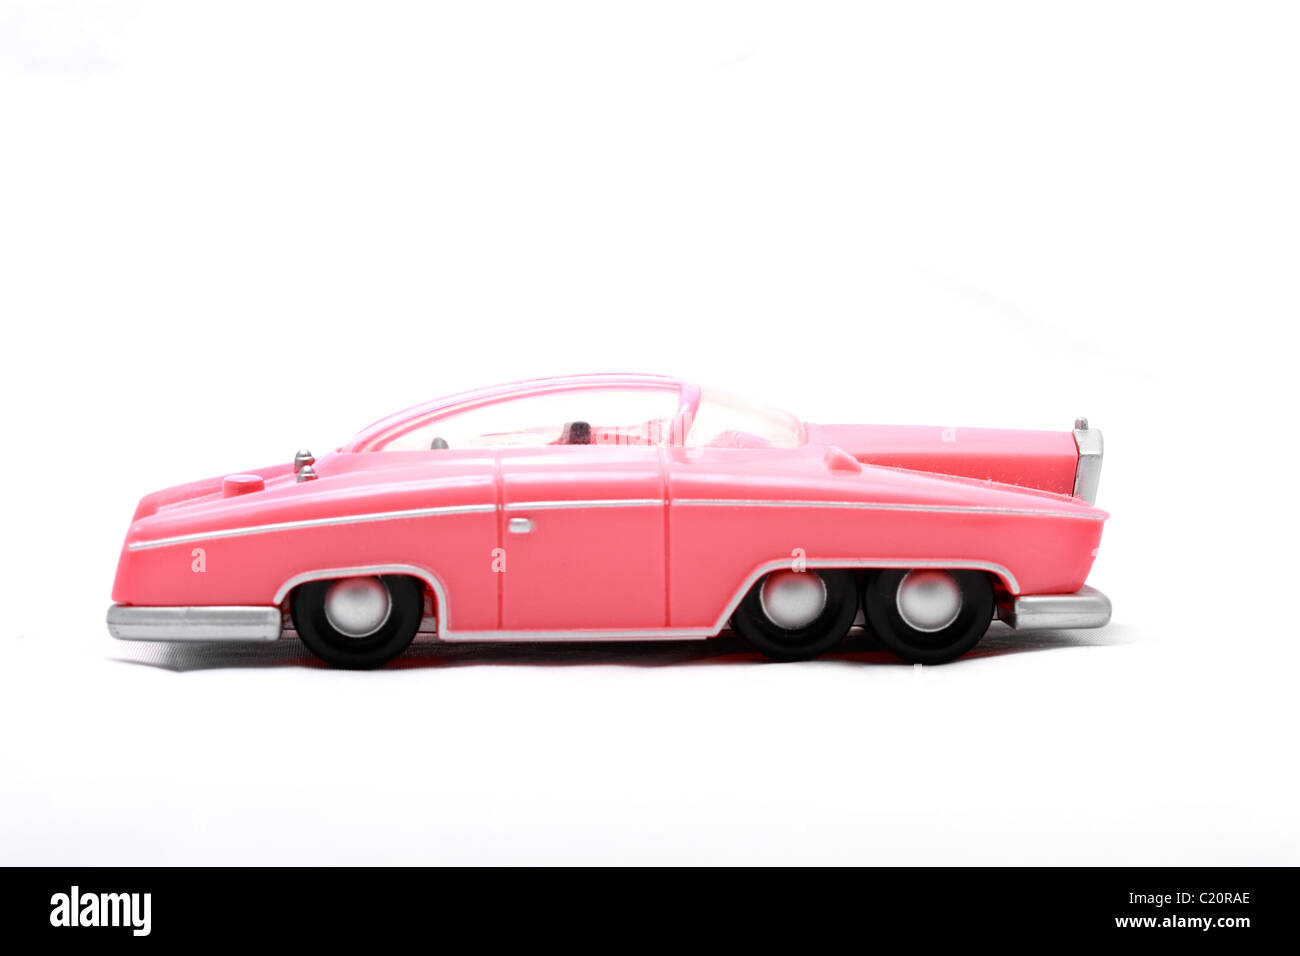 Lady Penelope's Rolls Royce toy model Gerry Andersen TV puppet series Thunderbirds car vehicle secret agent - Stock Image